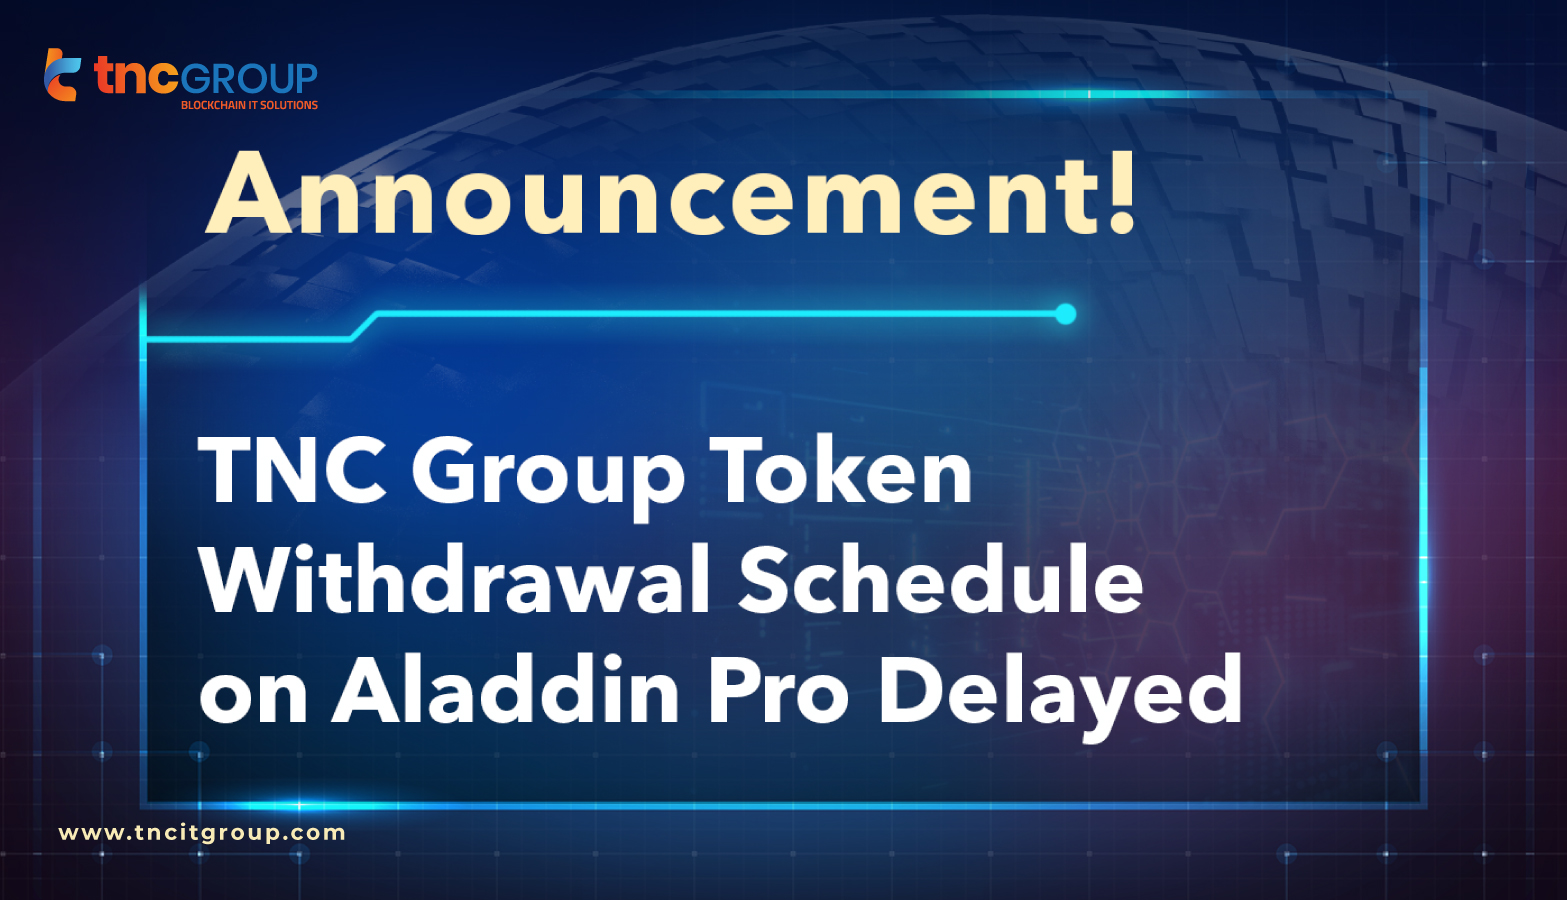 TNC Group Token withdrawal Delayed